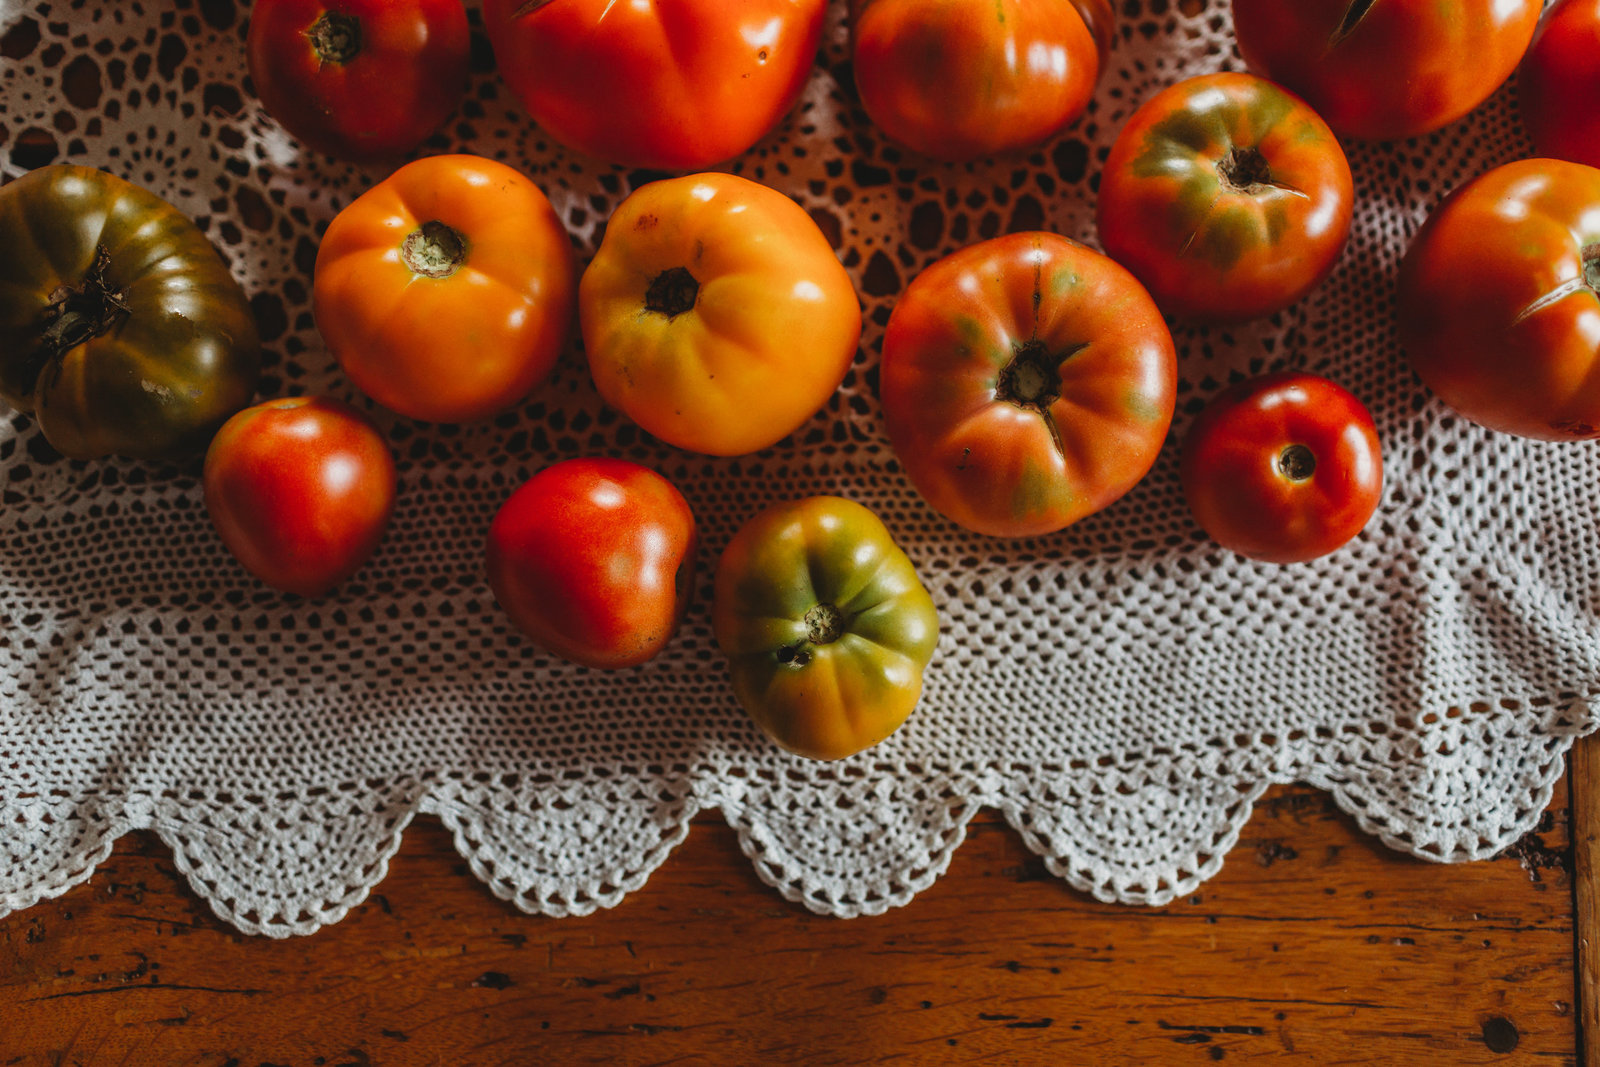 ripe tomatoes are scattered on a lace tablecloth